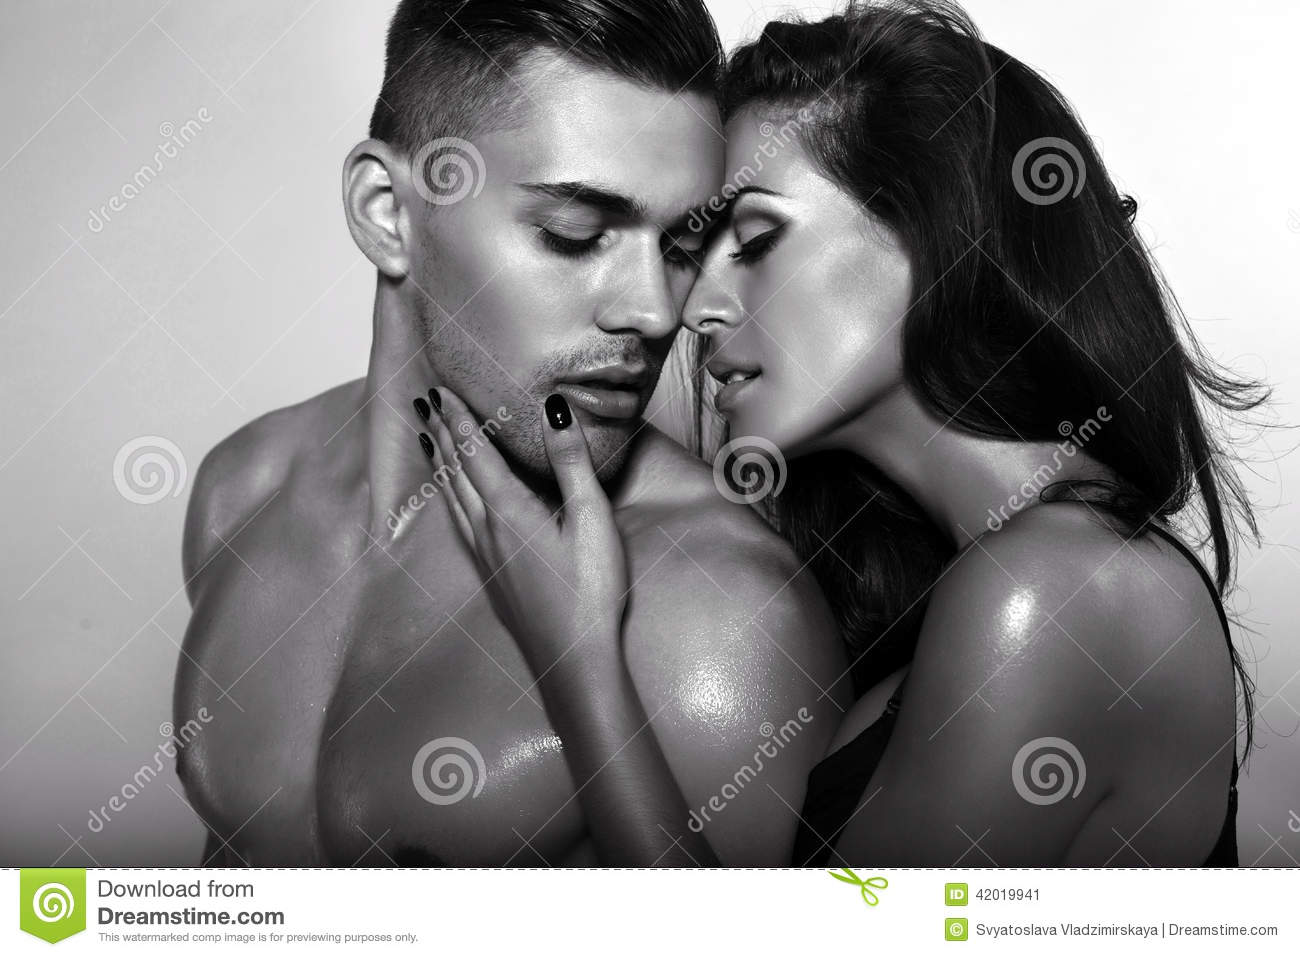 Black and white fashion portrait of naked couple posing at studio